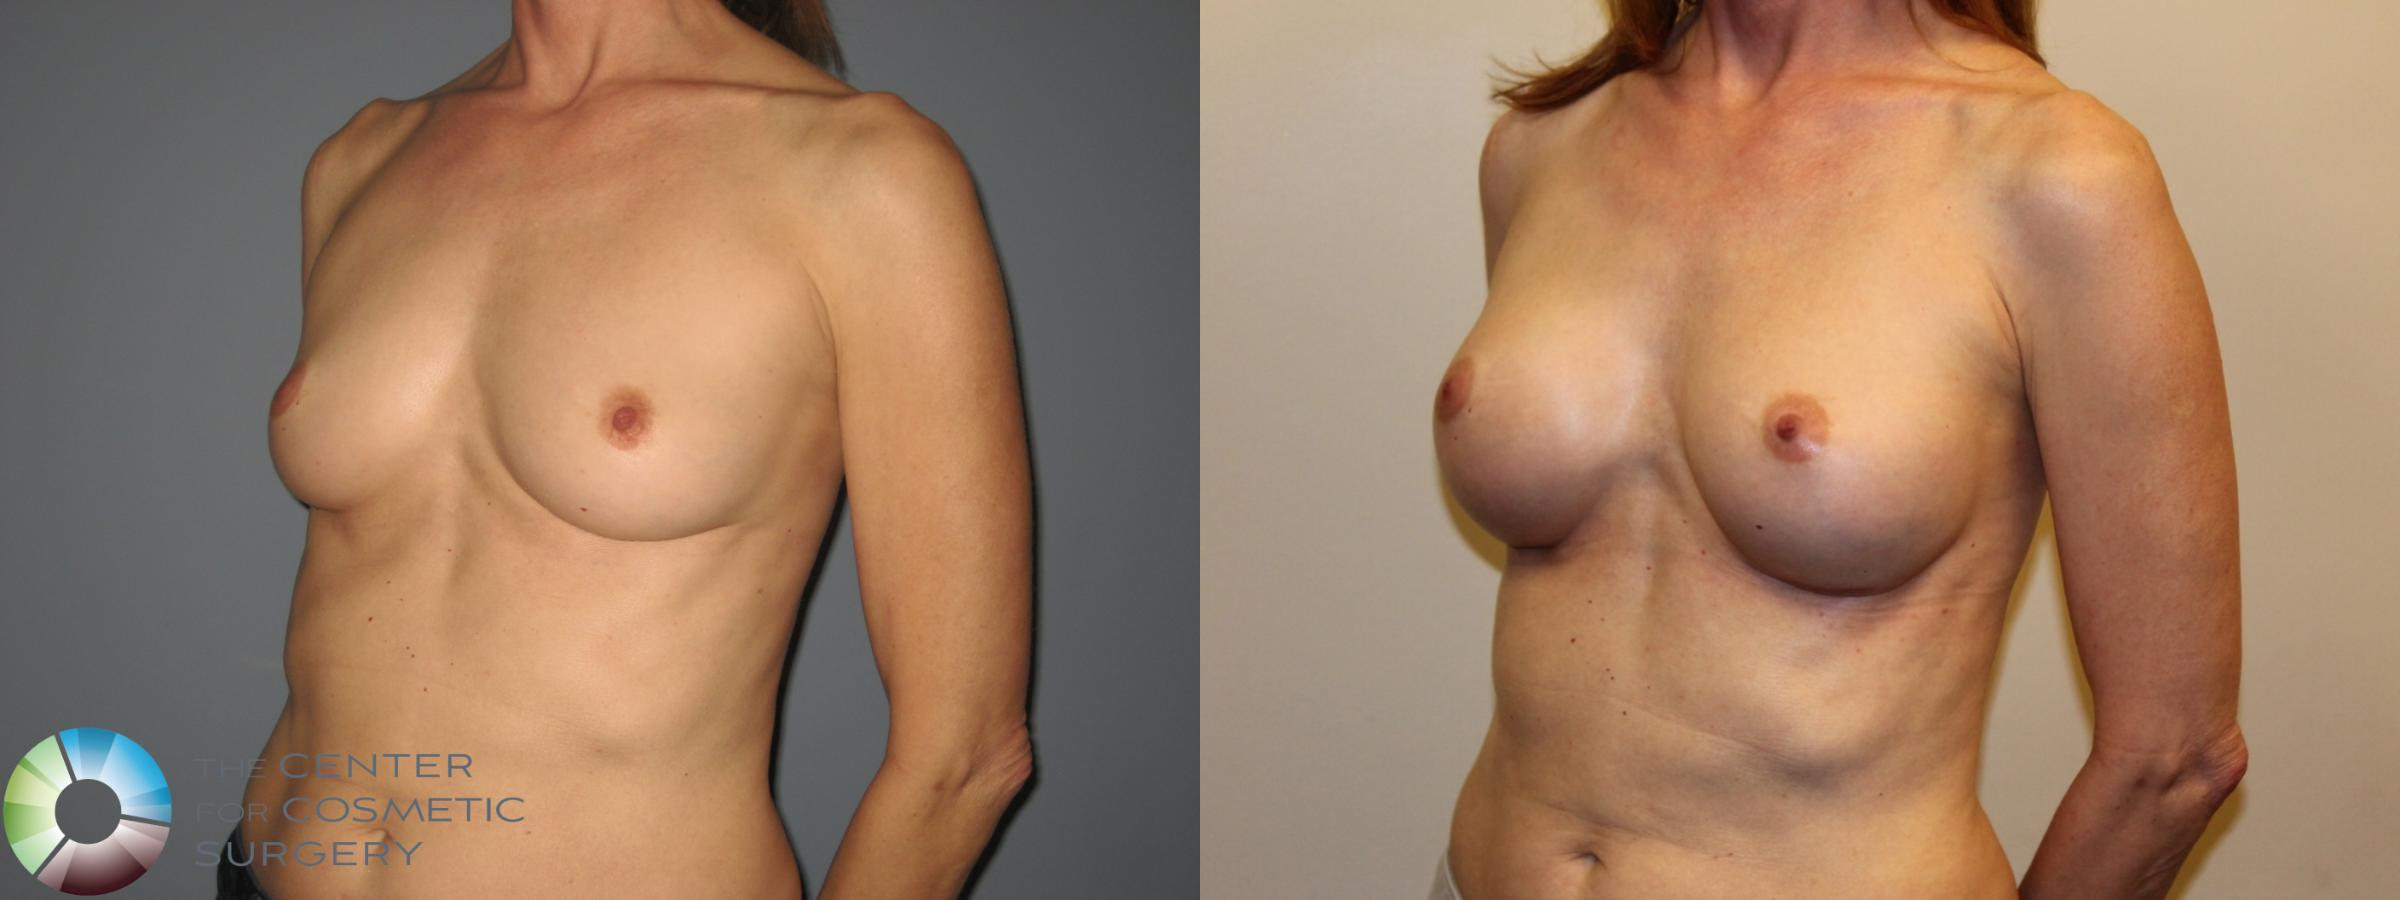 Breast Augmentation Case 718 Before & After View #2 | Golden, CO | The Center for Cosmetic Surgery